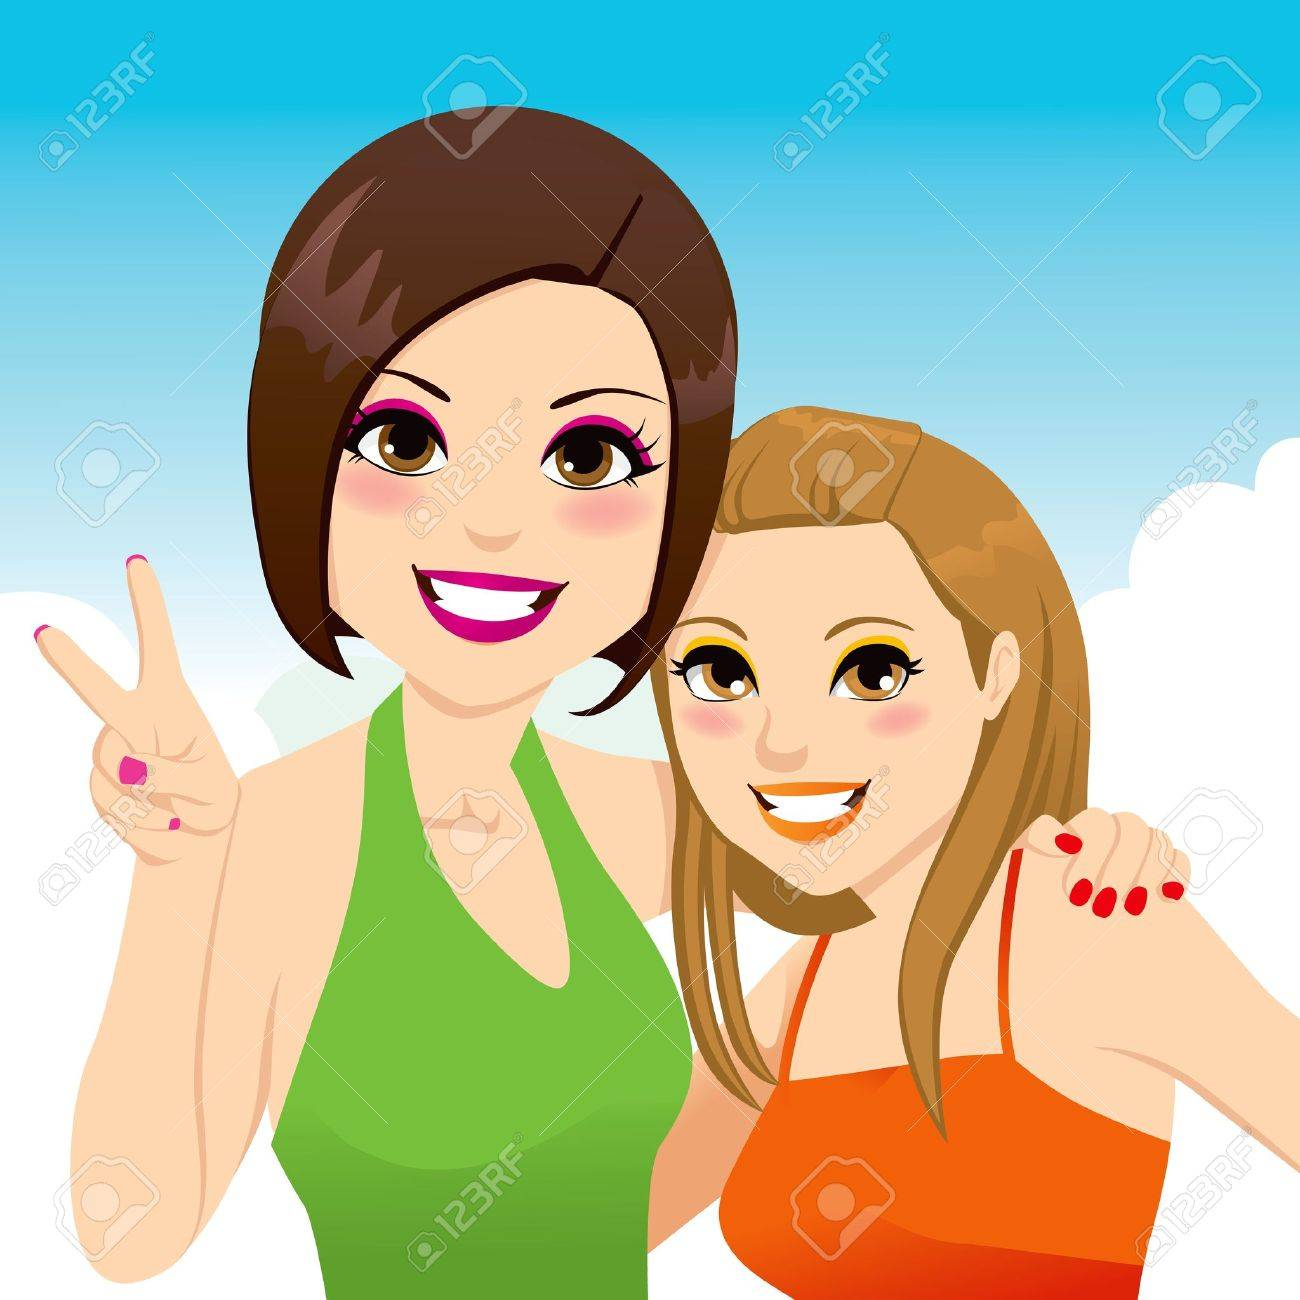 Funny snapshot portrait illustration of two beautiful best friends girls posing together Stock Vector - 14126563